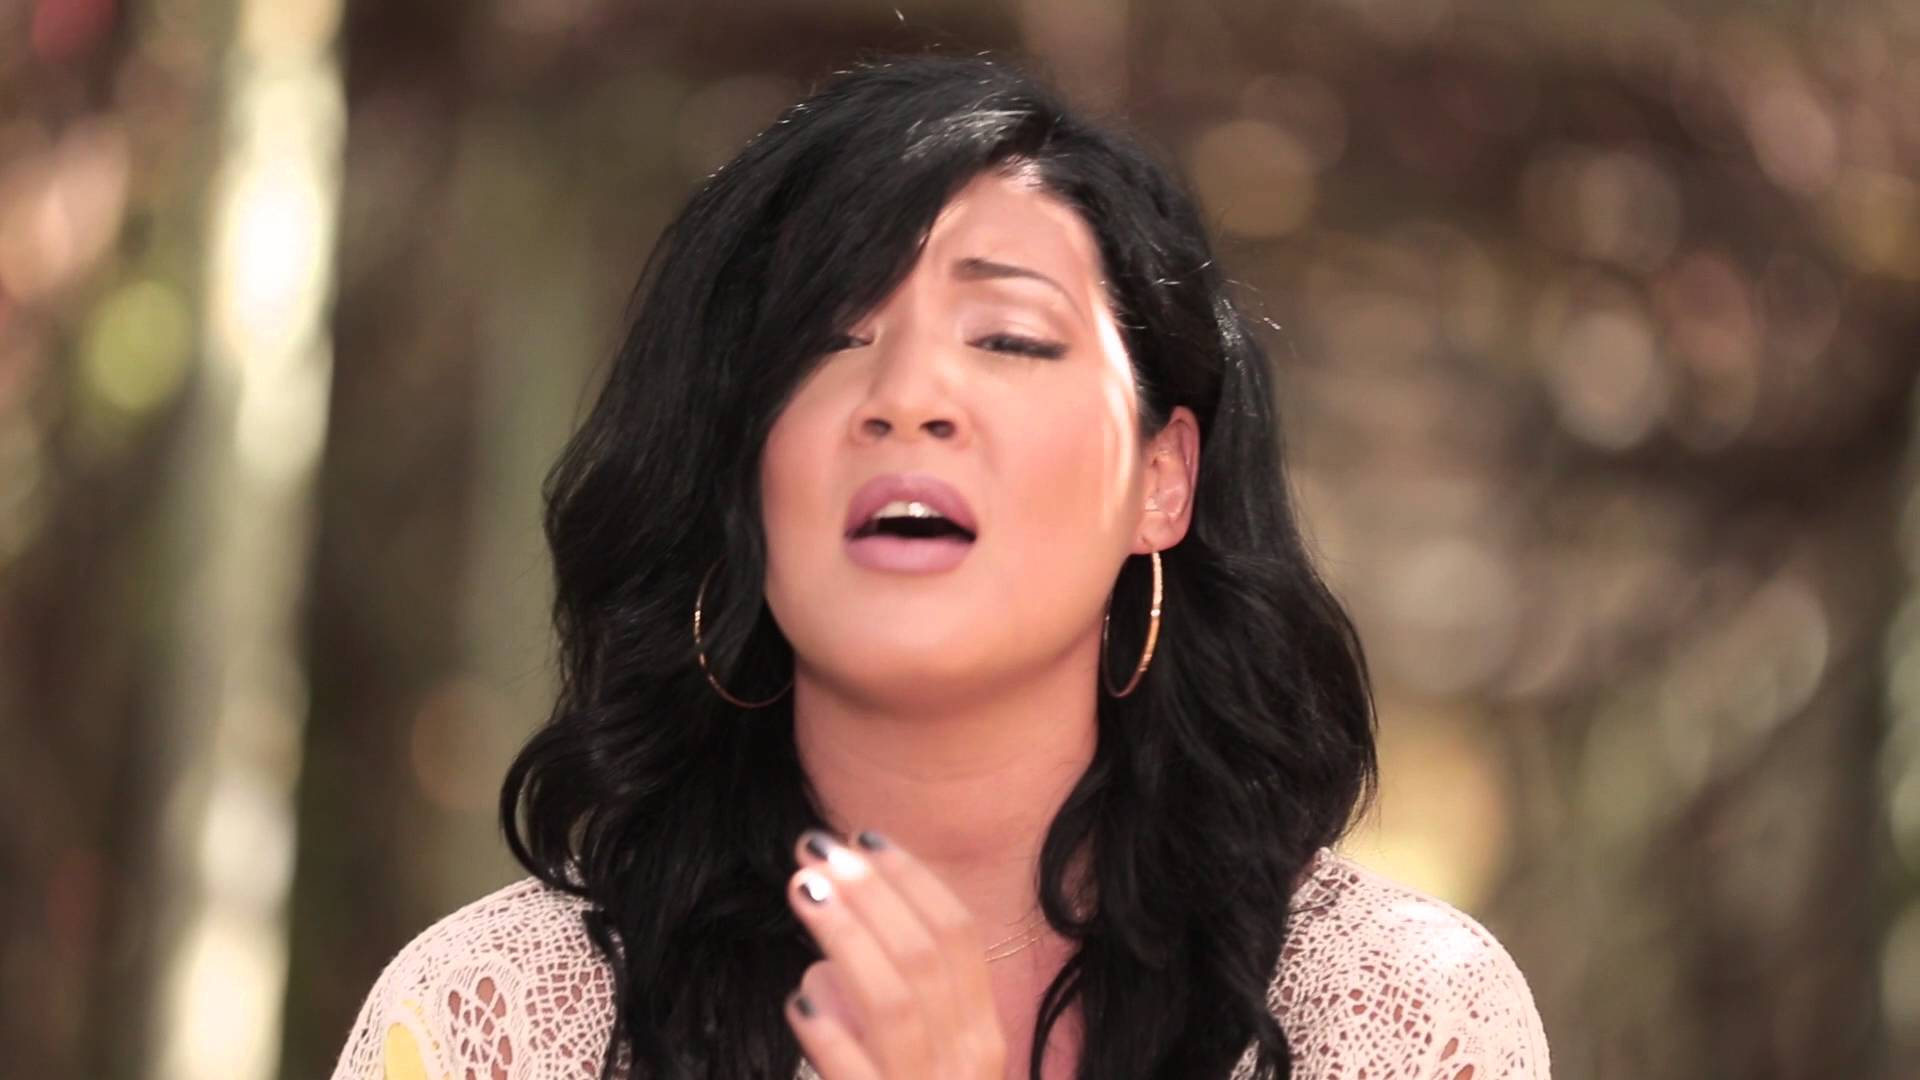 Tessane Chin - Redemption Song [2/6/2016]